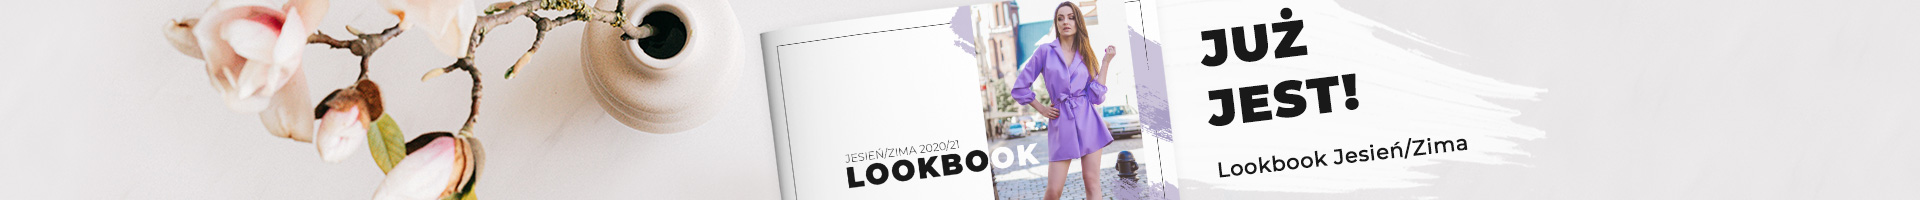 lookbook!